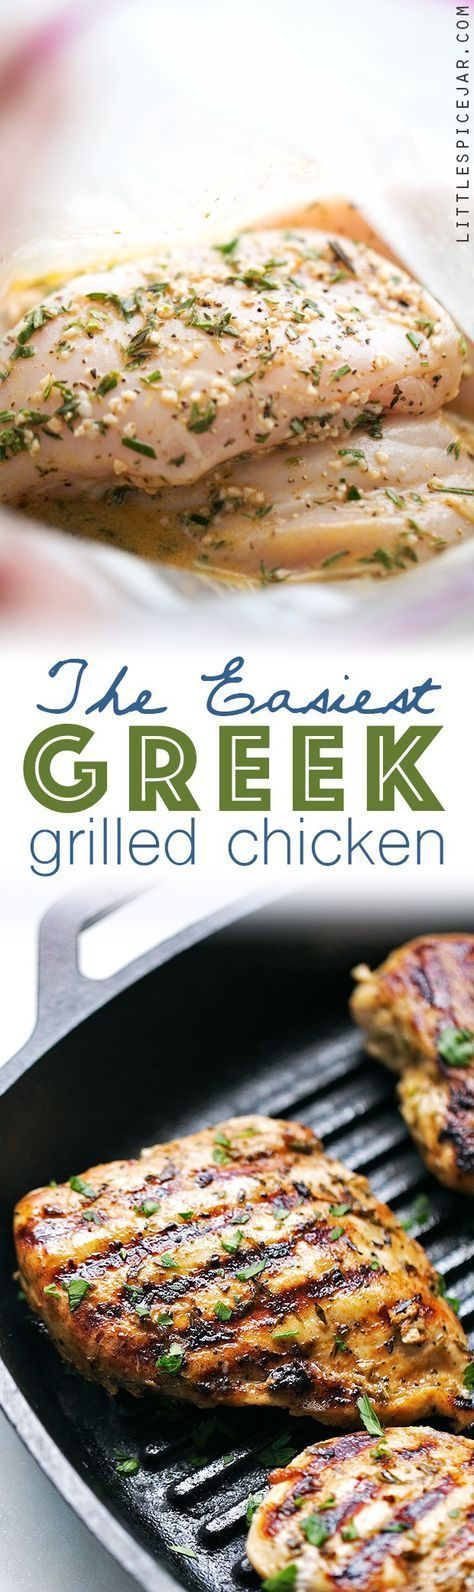 The Easiest Greek Grilled Chicken - 10 simple ingredients in this tender and…